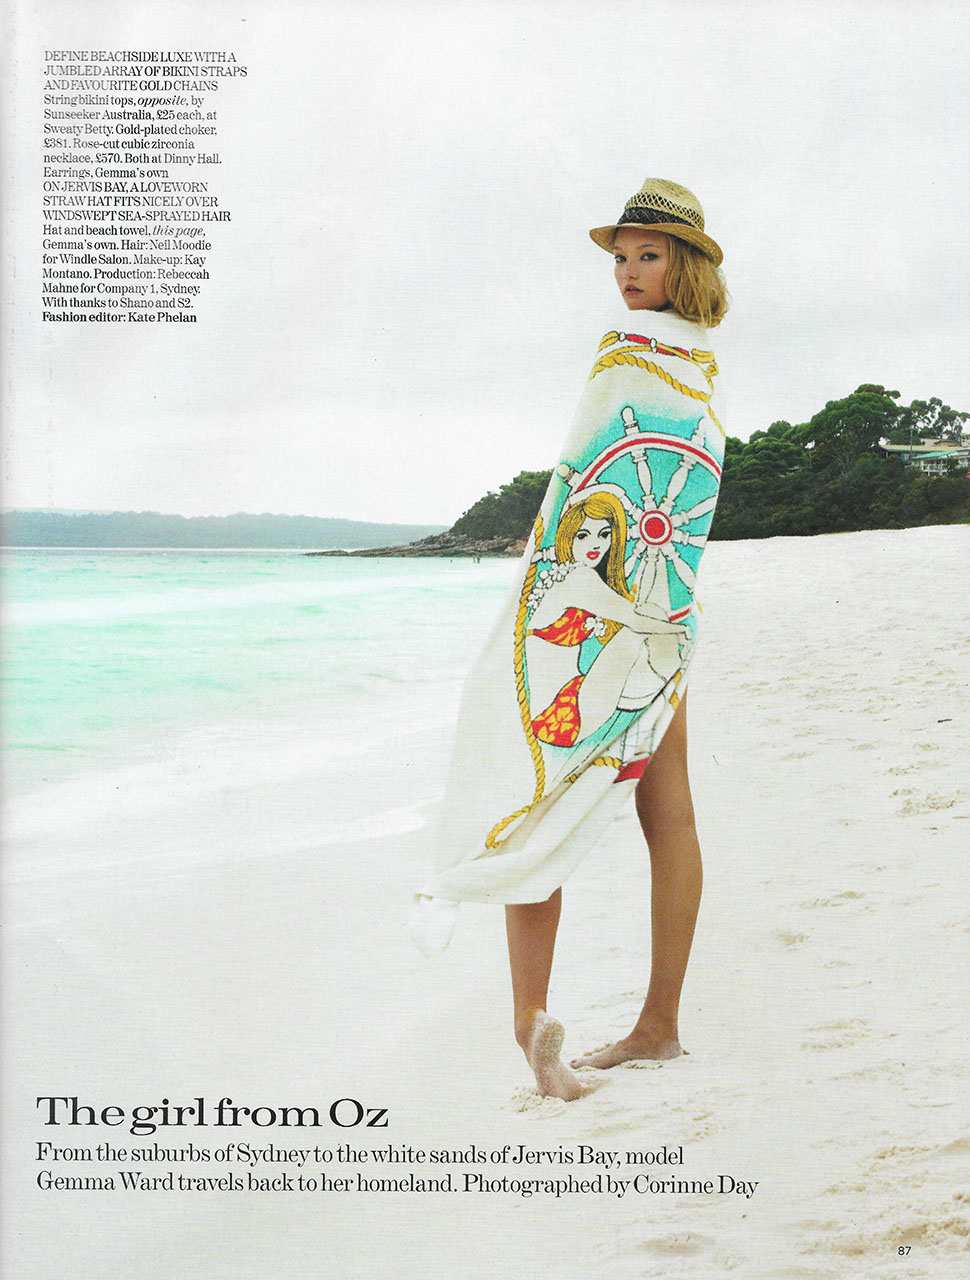 UK Vogue July 2006 The girl from Oz.jpg